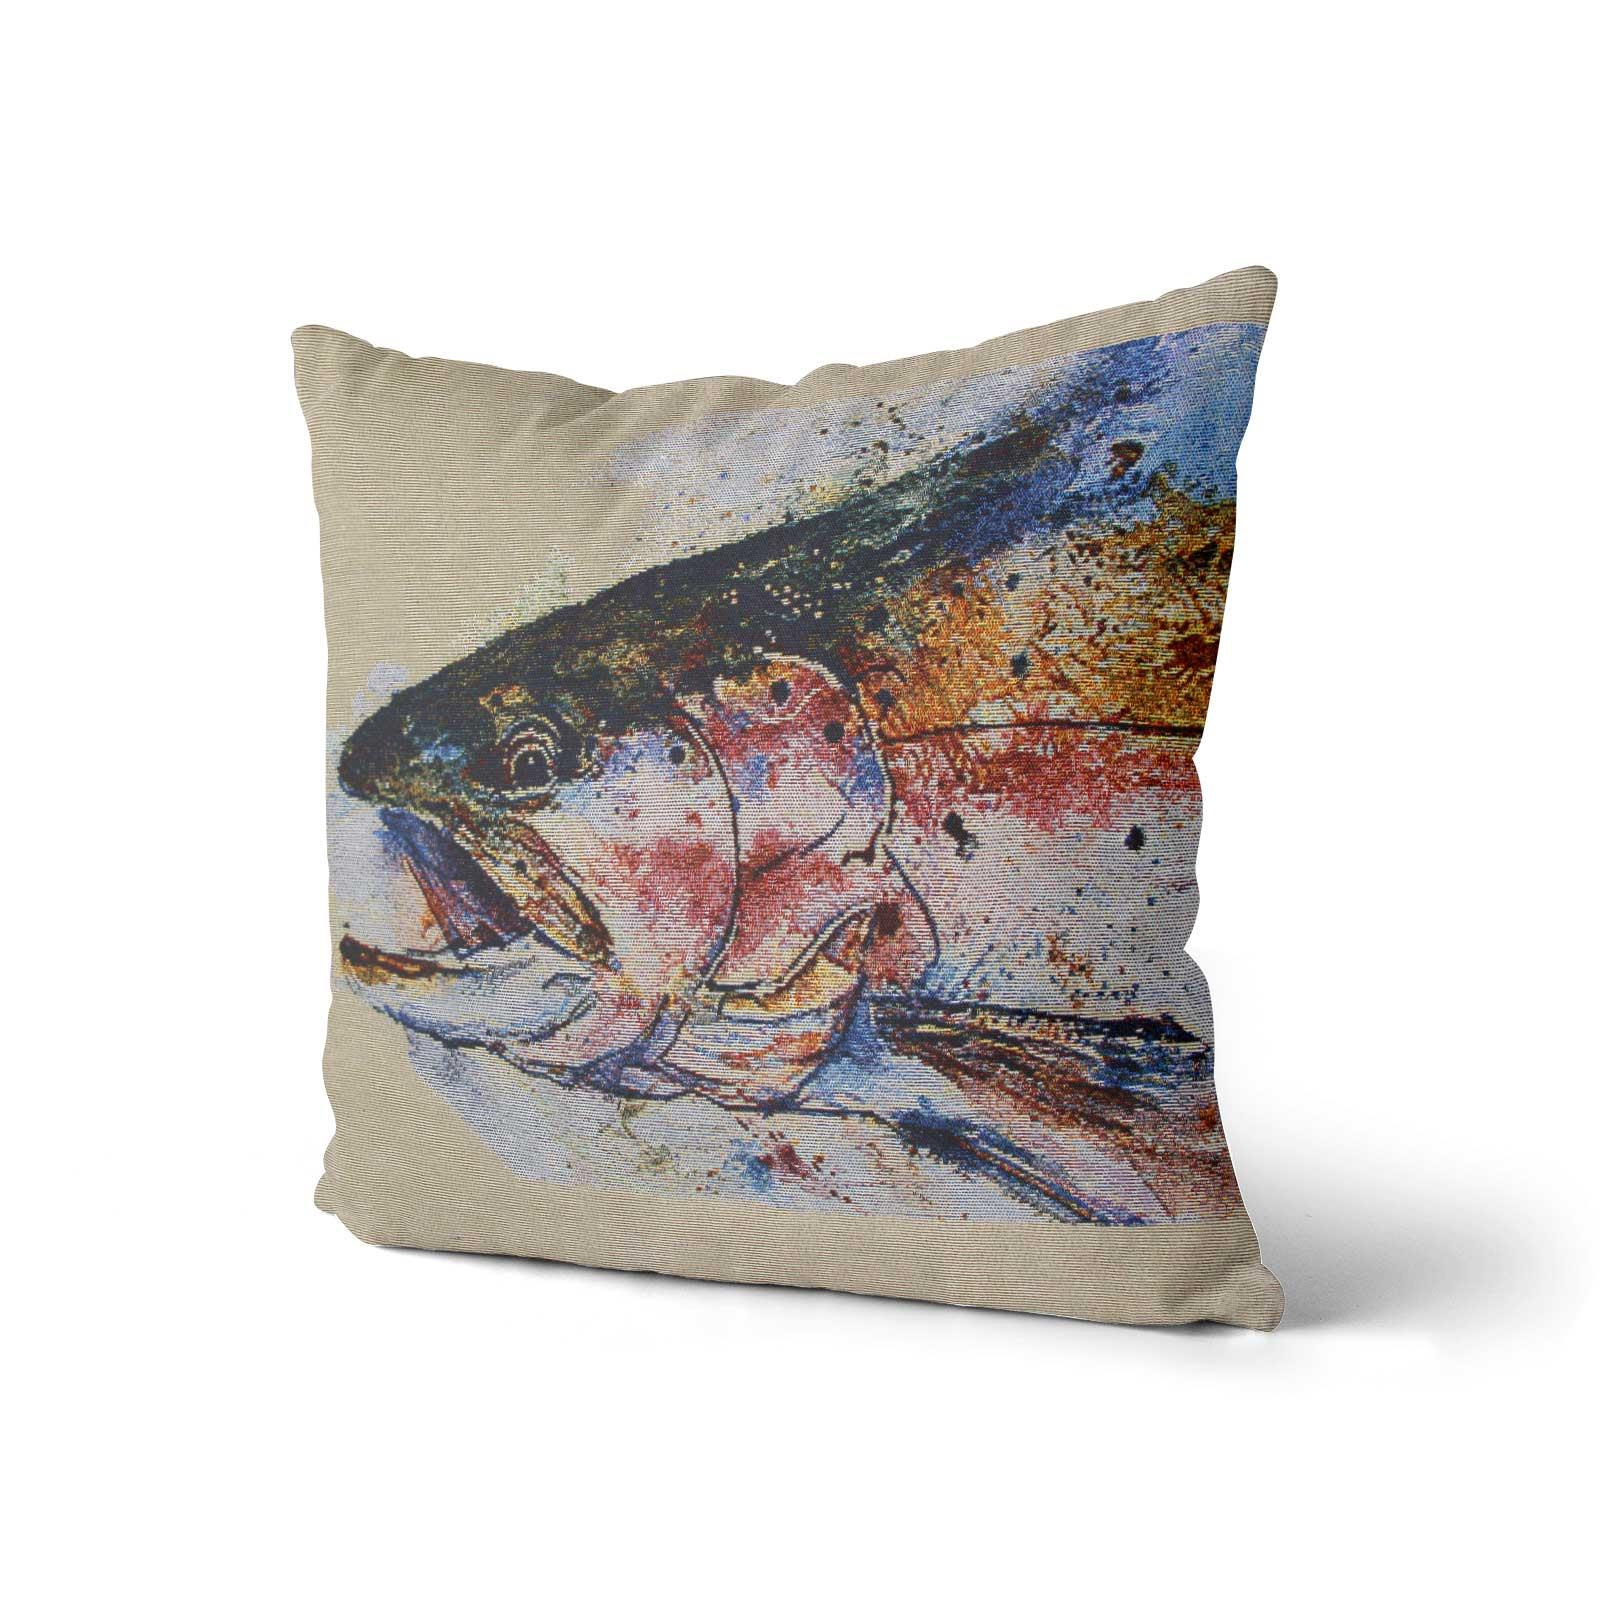 Tapestry-Cushion-Covers-Vintage-Pillow-Cover-Collection-18-034-45cm-Filled-Cushions thumbnail 216